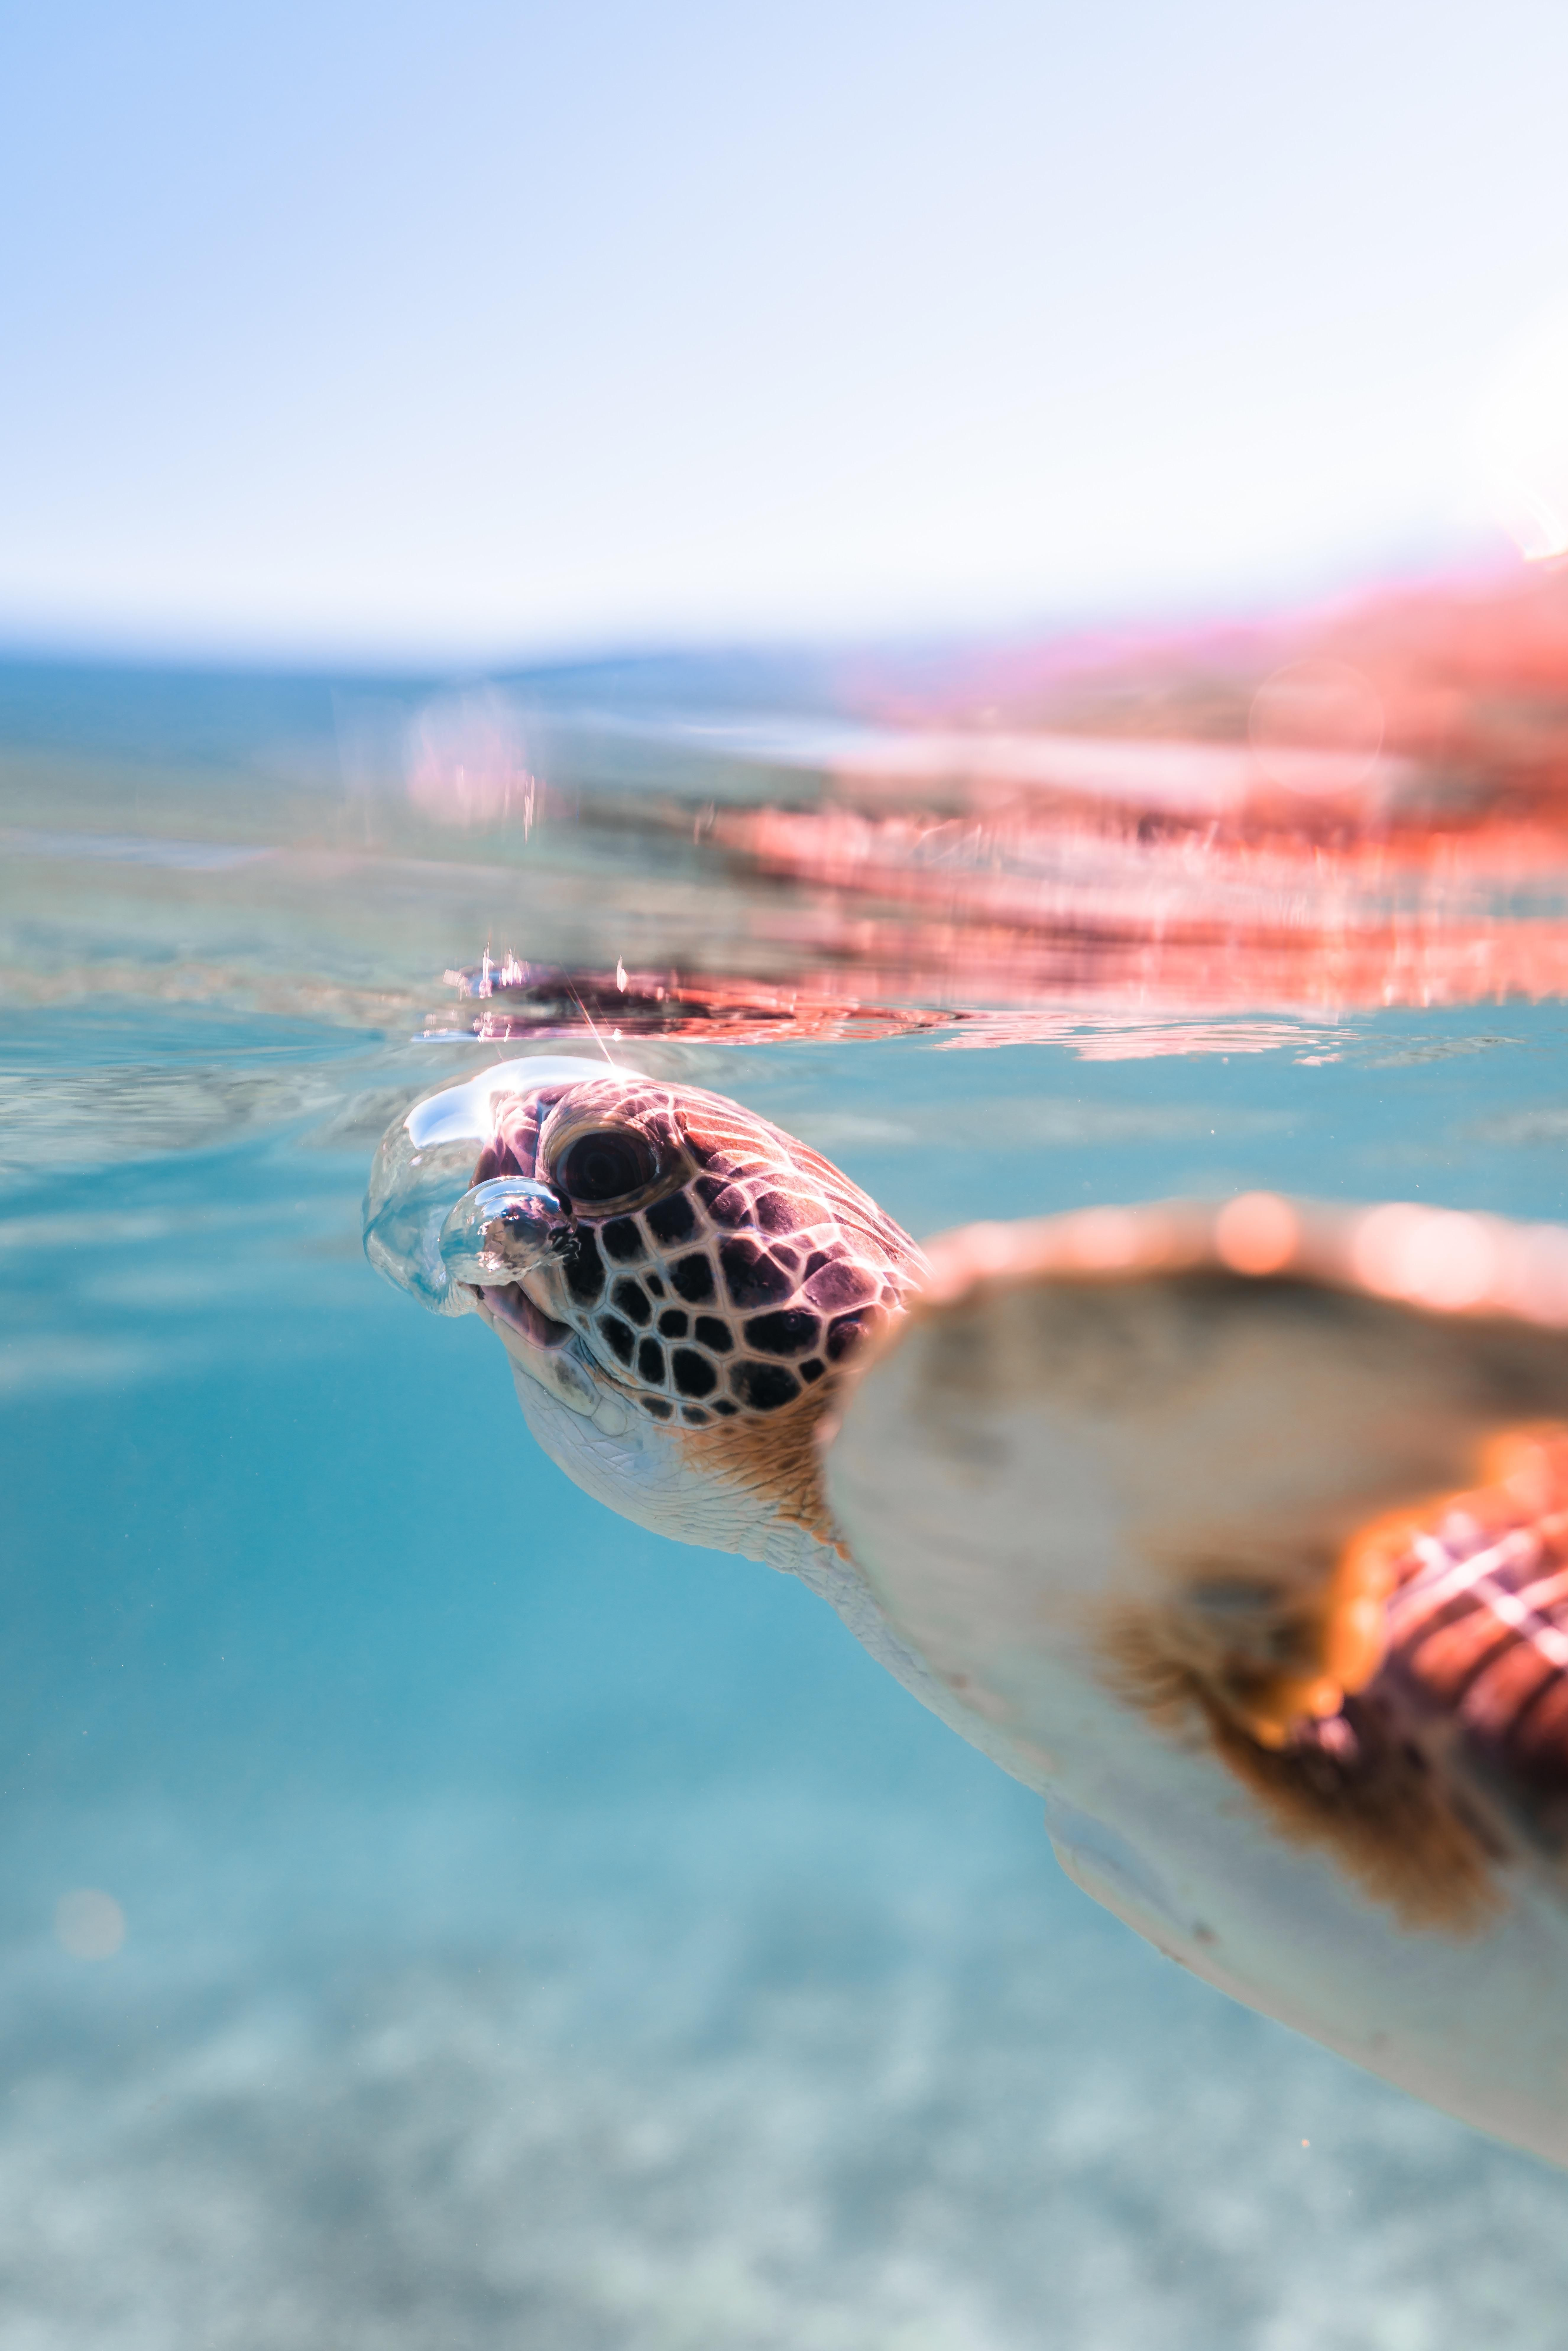 A sea turtle getting some air animals nature